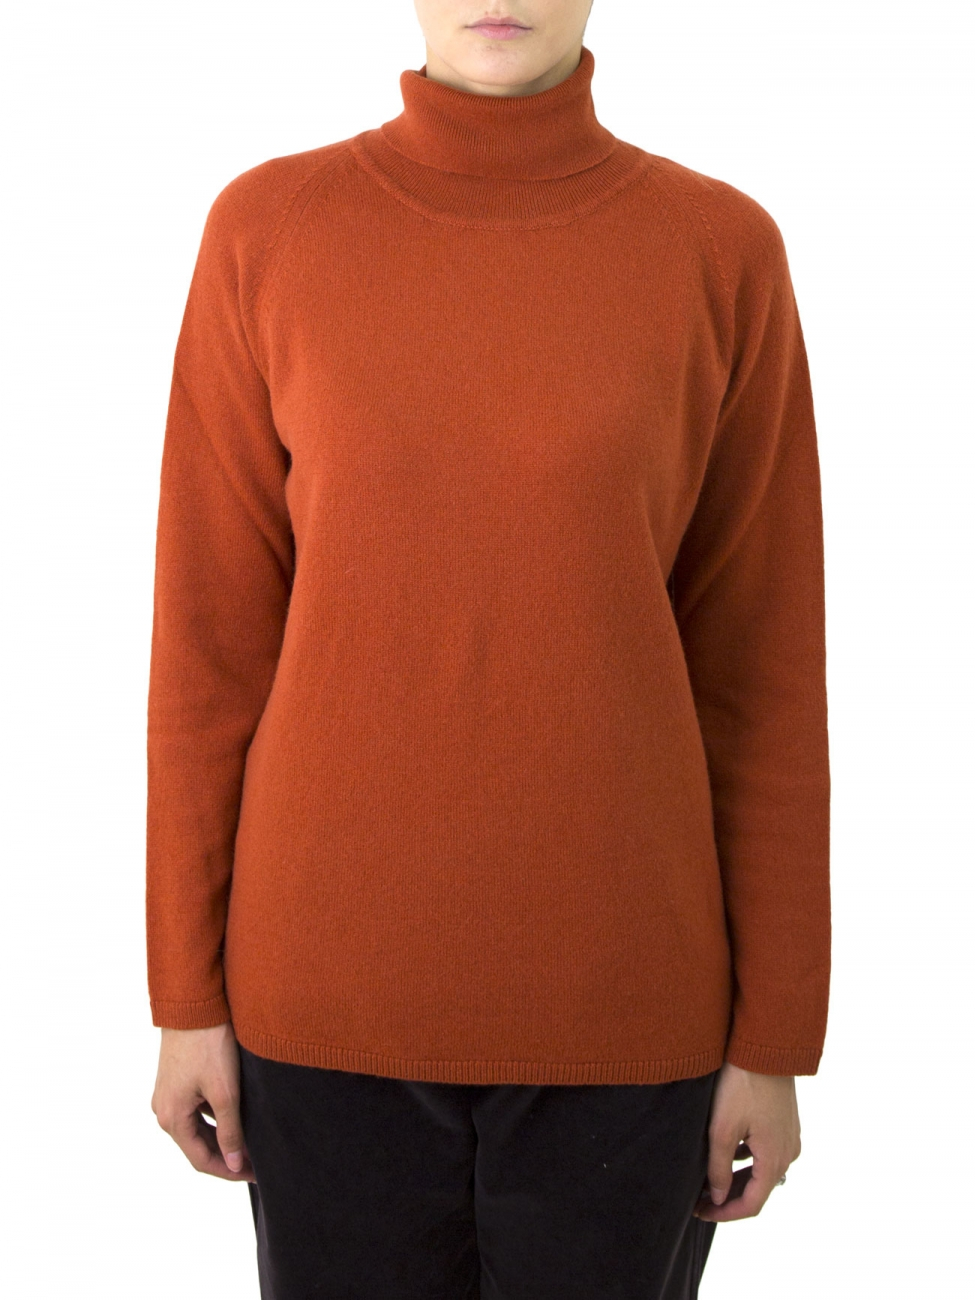 Rust Colored Sweater Women'S - Cashmere Sweater England